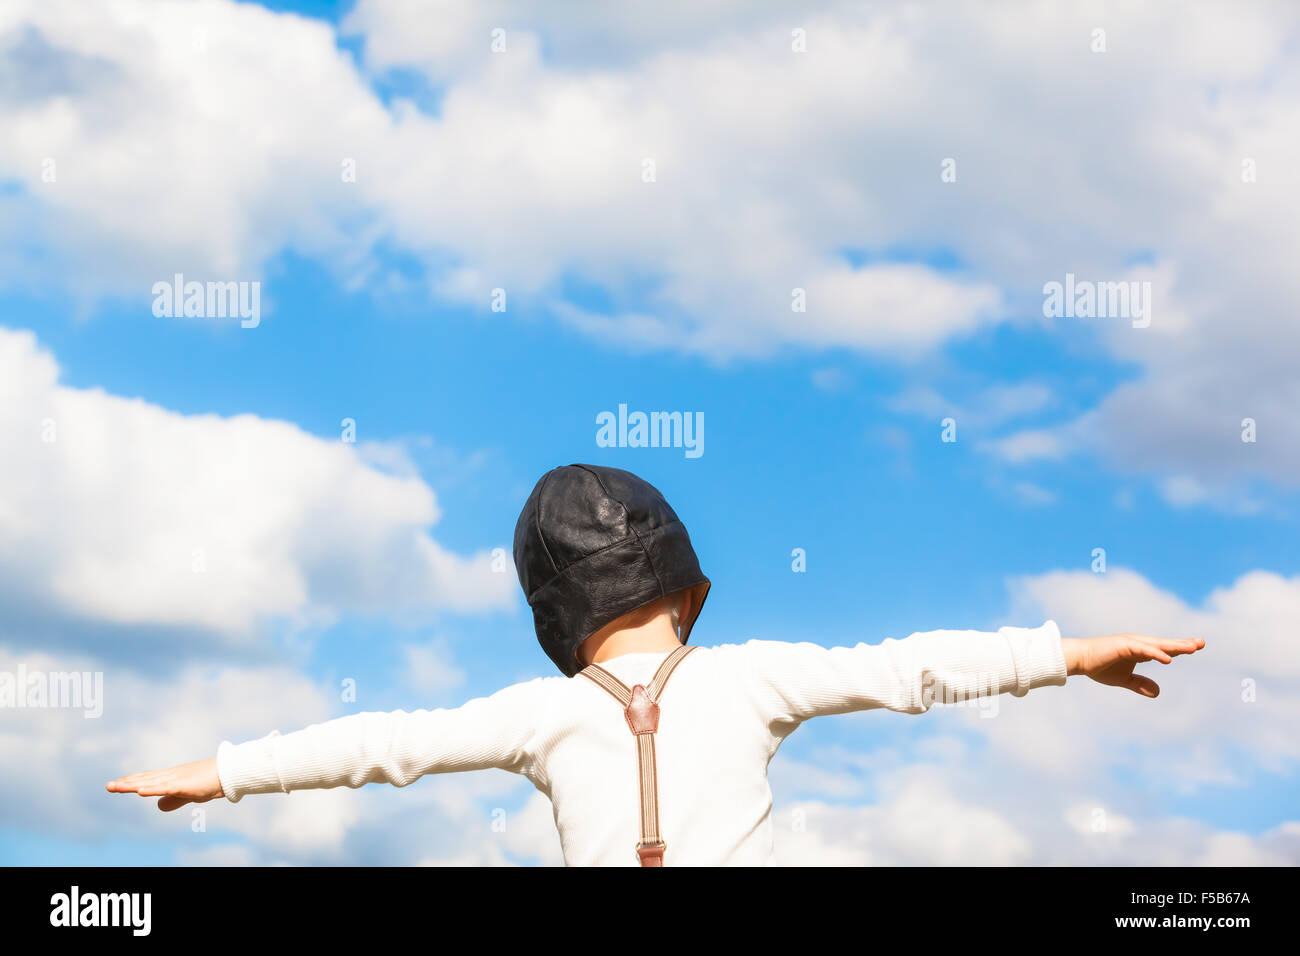 Little boy in vintage clothes dreams of flying with